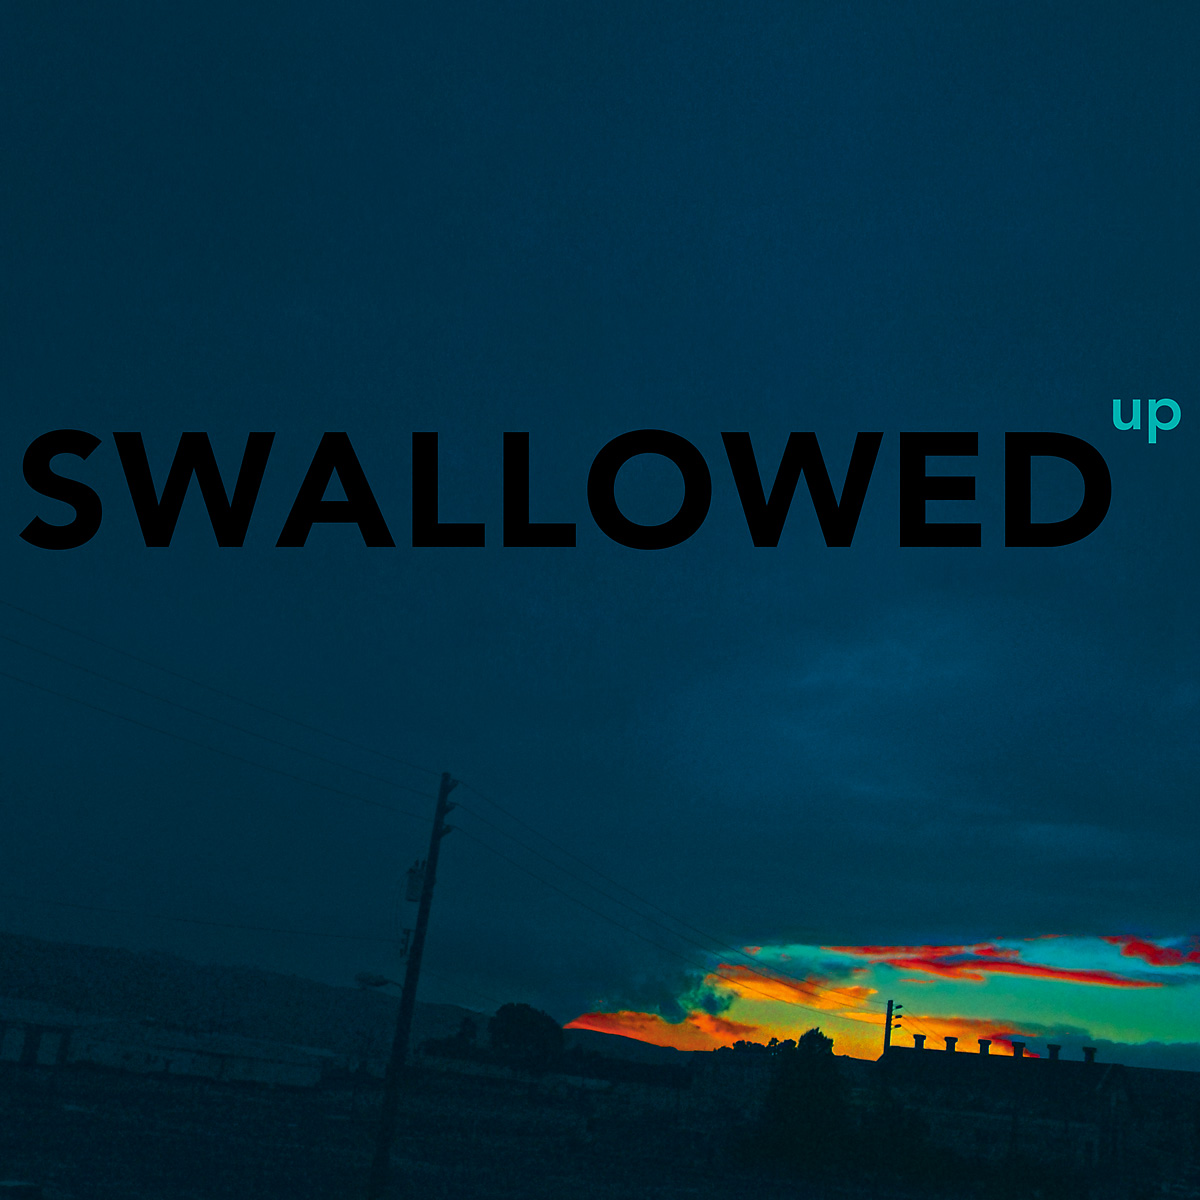 sunset-swallowed_up-CD_words